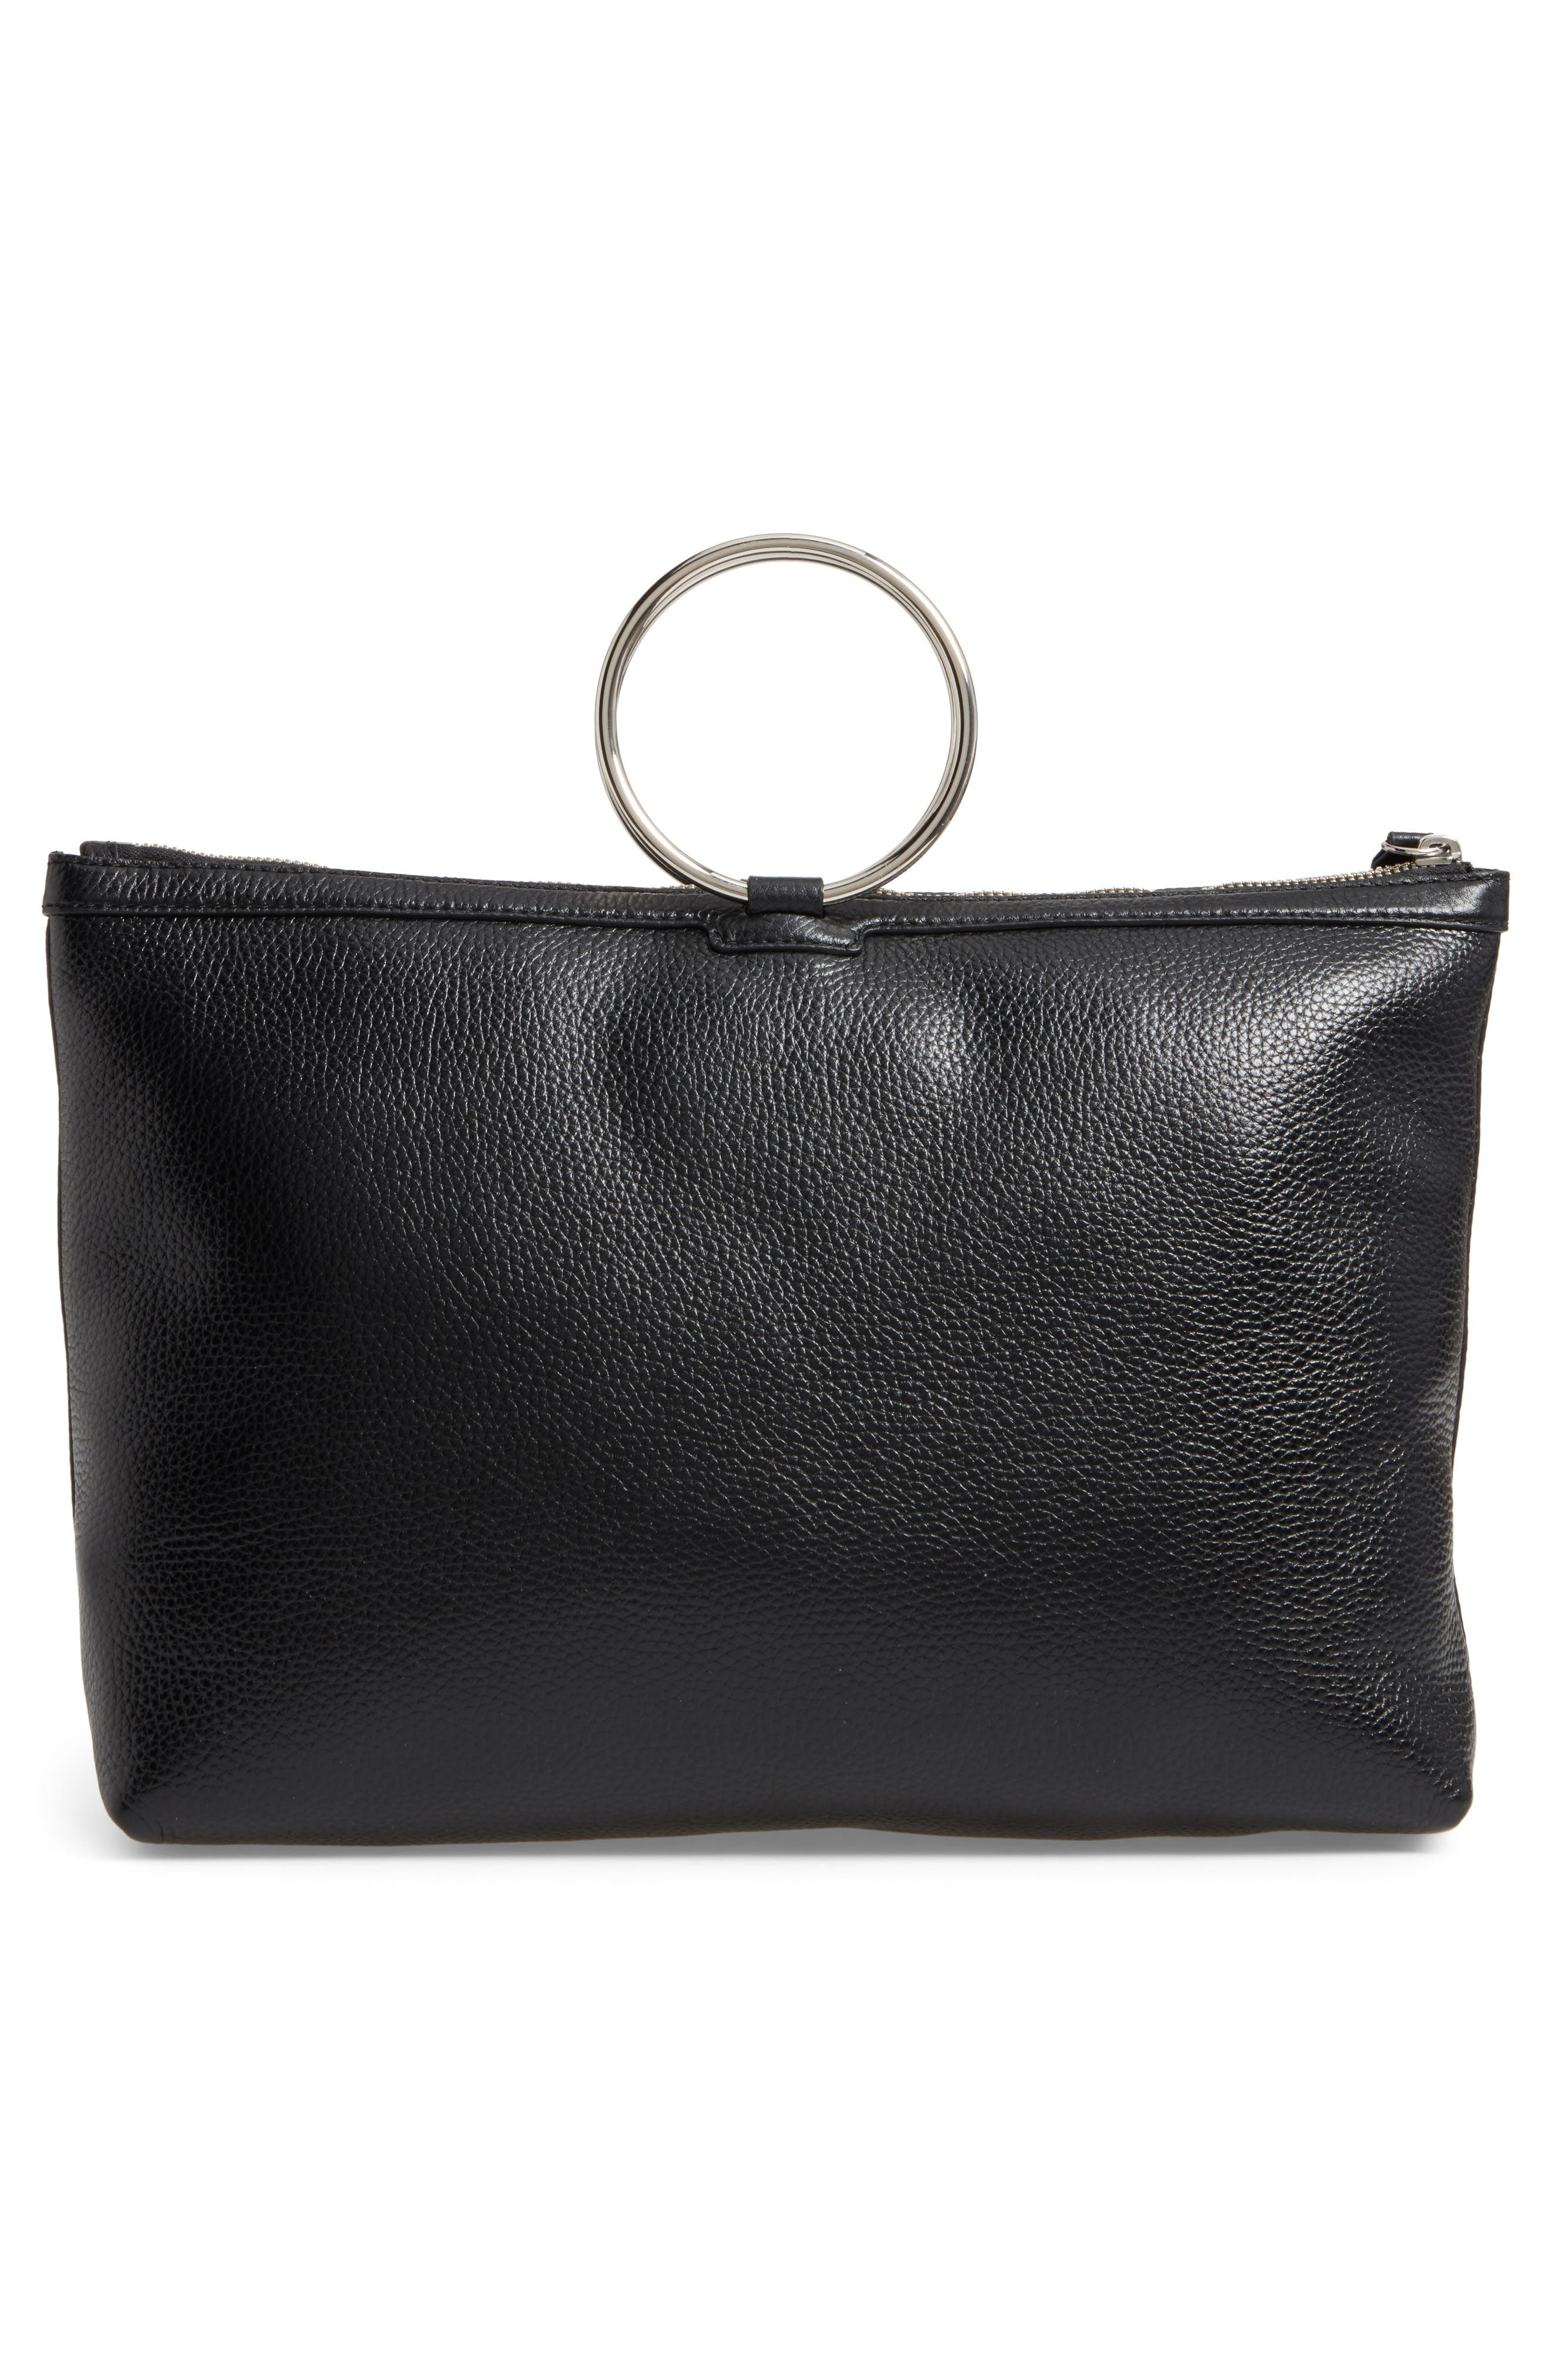 KARA, Large Pebbled Leather Ring Clutch, Alternate thumbnail 3, color, 001